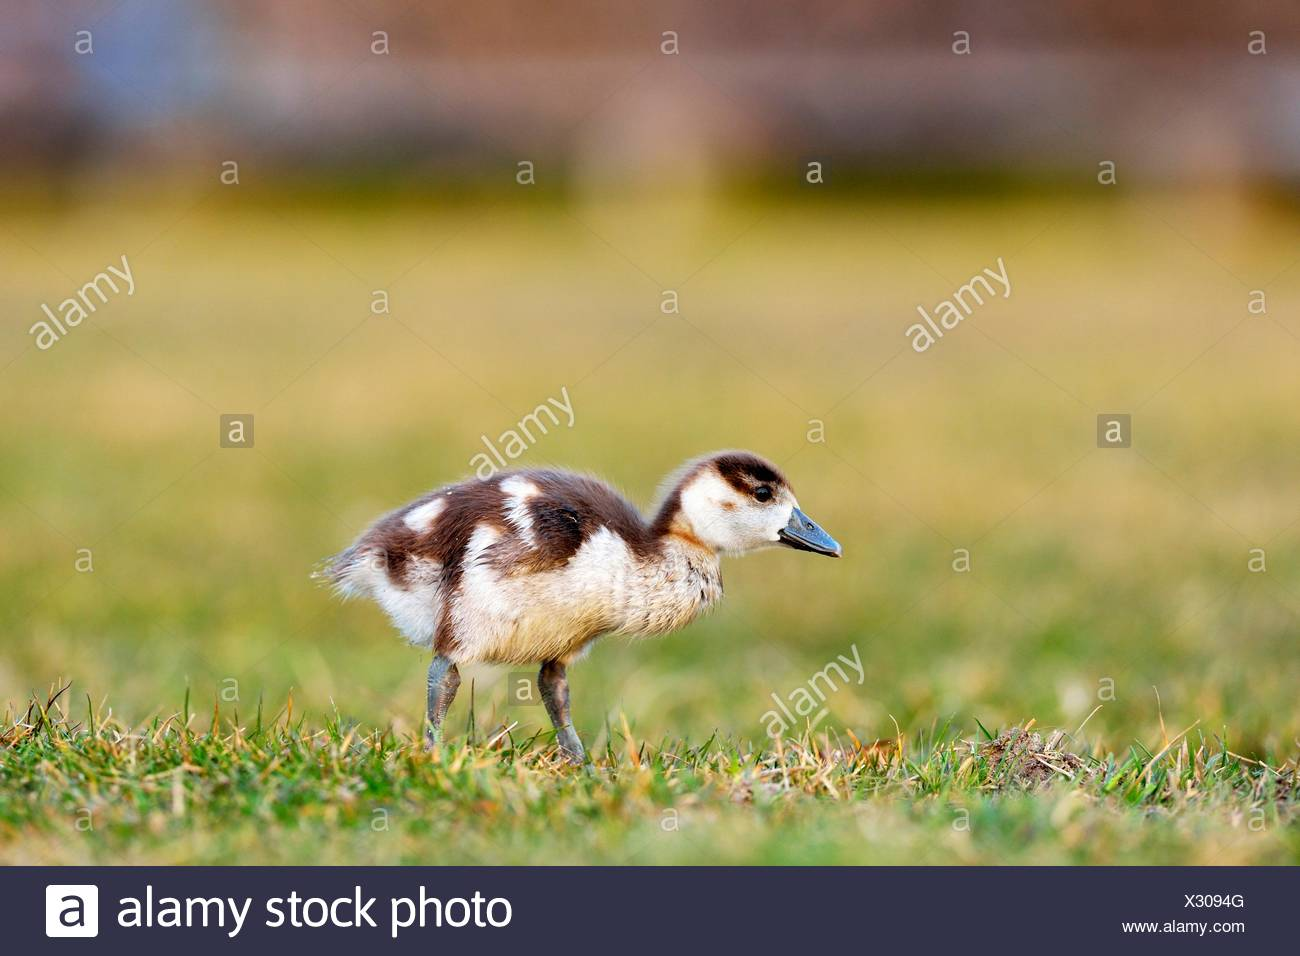 Egyptian goose (Alopochen aegyptiacus) chick, foraging, Zug, Canton of Zug, Switzerland - Stock Image